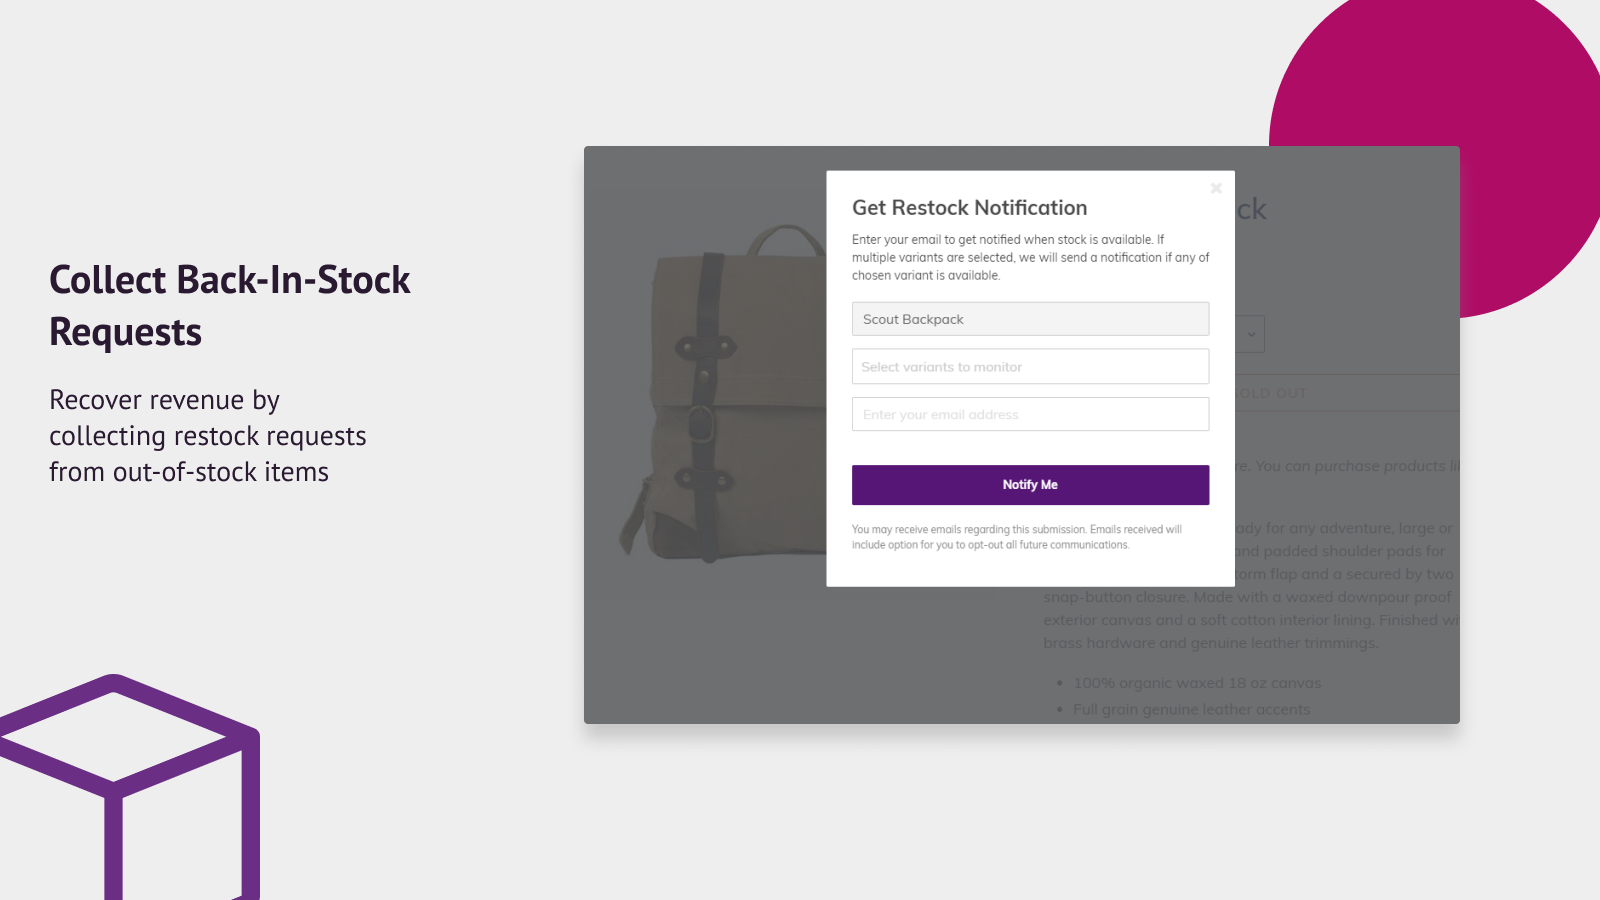 Collect Back-In-Stock Requests